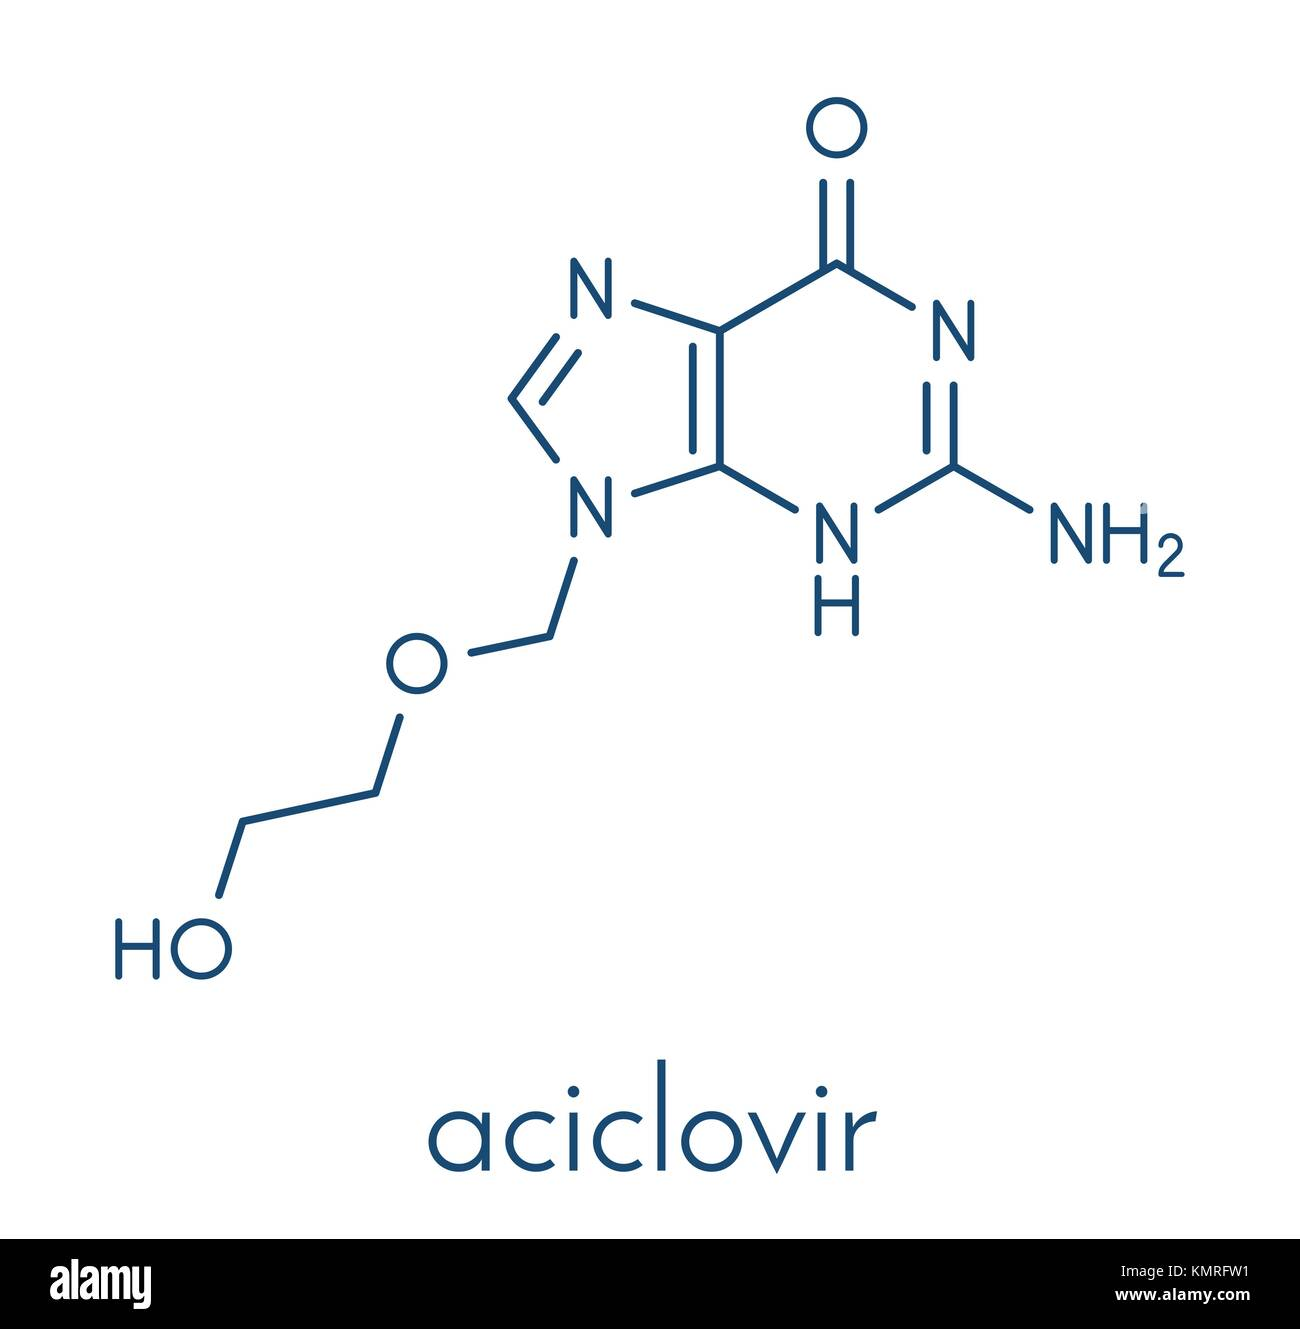 hight resolution of aciclovir acyclovir antiviral drug molecule used in treatment of herpes simplex virus cold sores herpes zoster shingles and varicella zoster